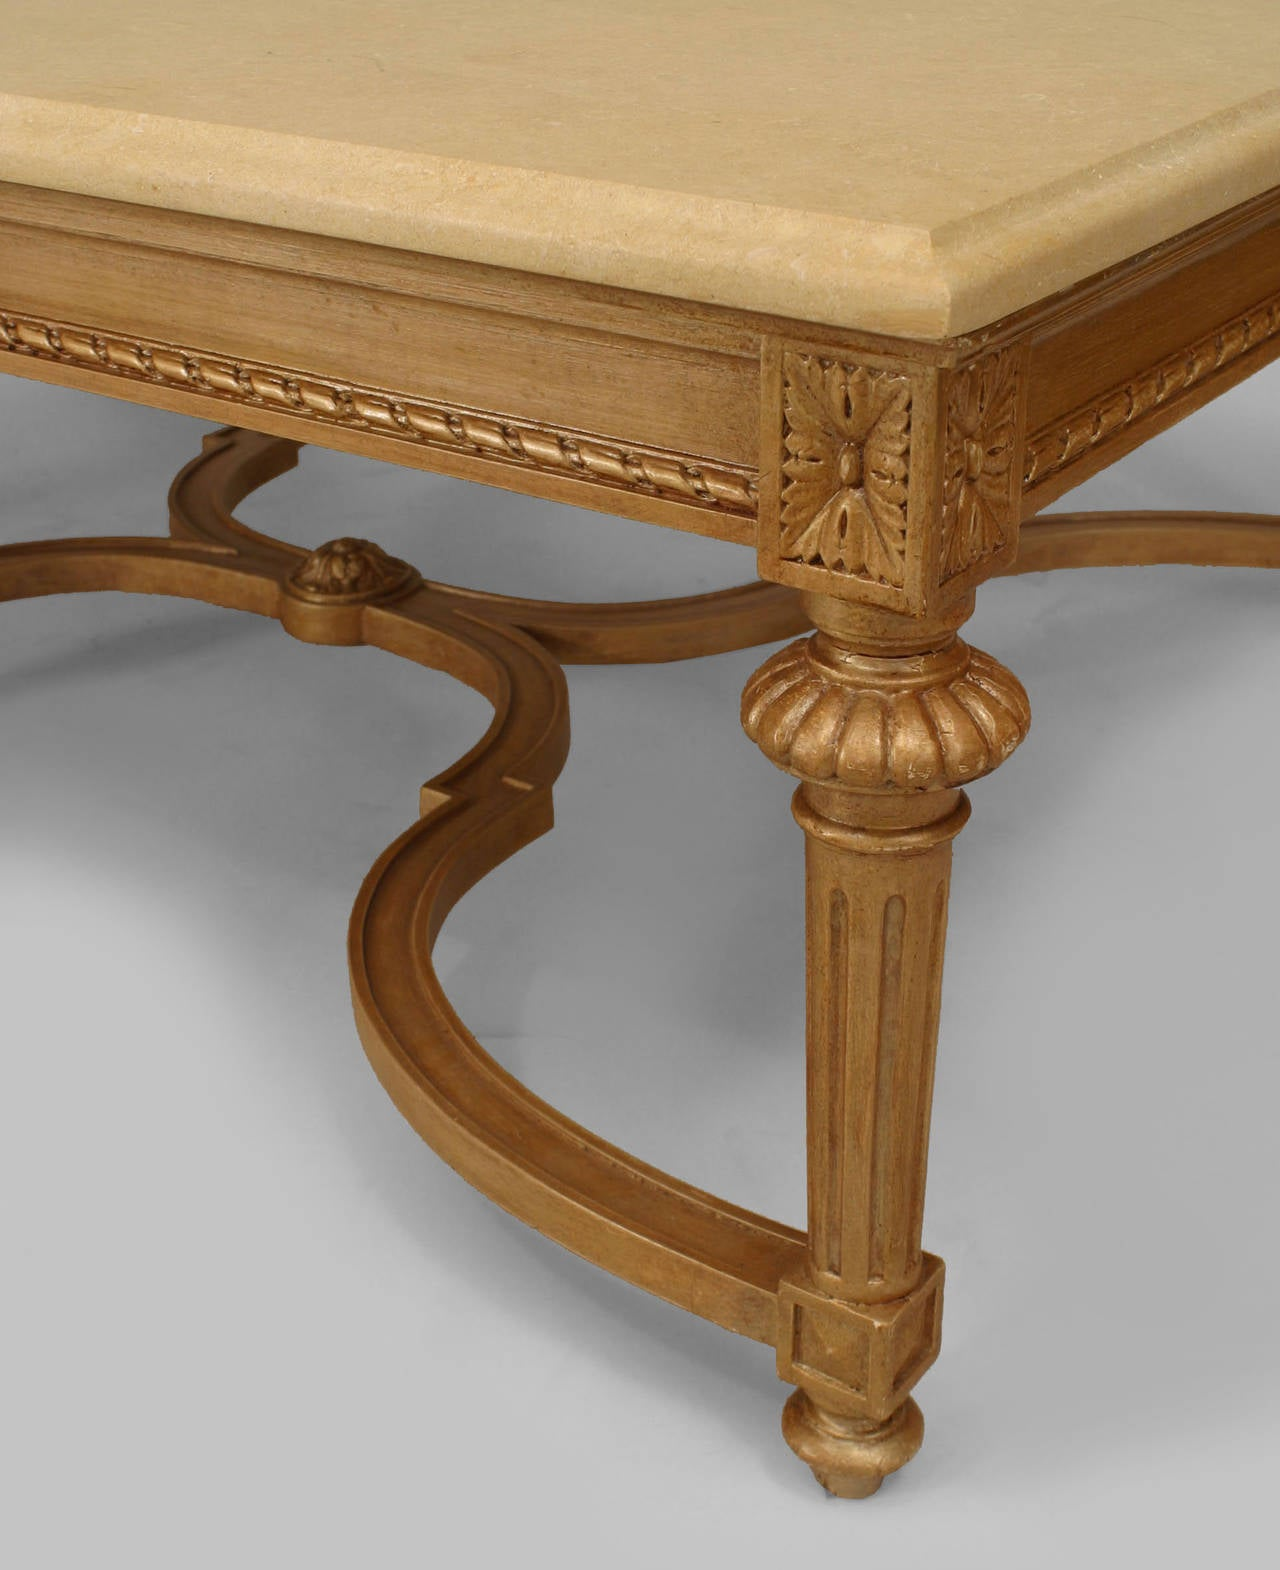 Large French Coffee Table: Large 20th French Louis XVI Style Marble And Gilt Carved